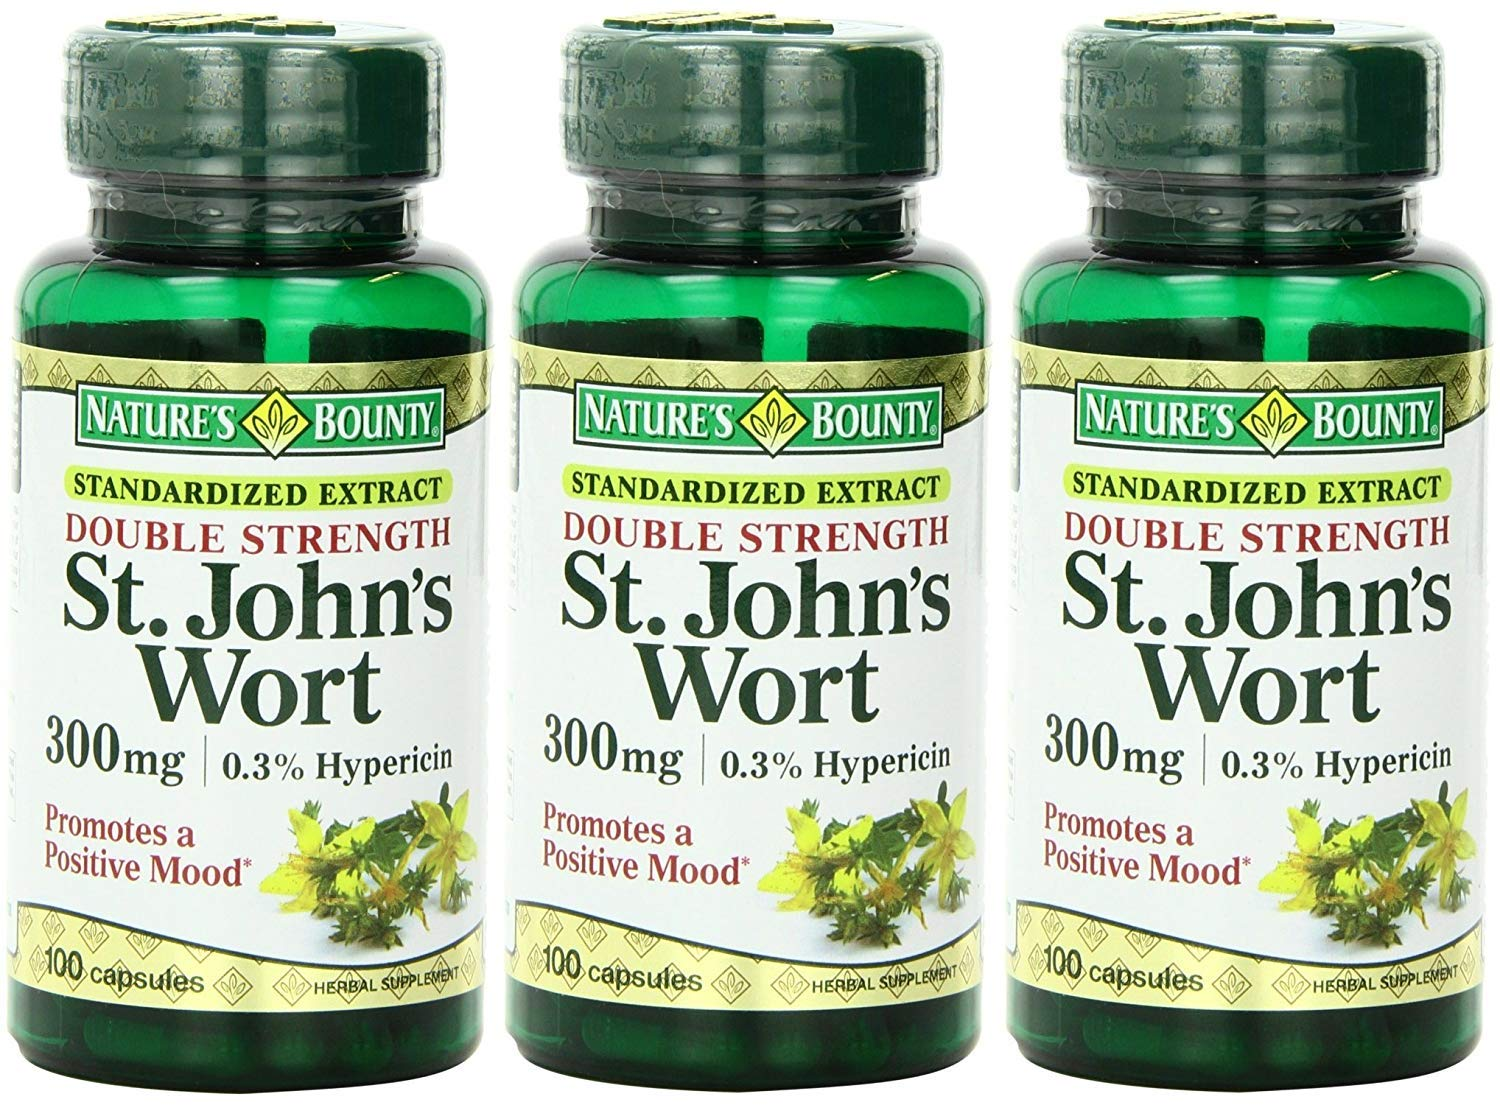 Nature s Bounty St. John s Wort, Double Strength, 300mg, 300 Capsules 3 X 100 Count Bottles